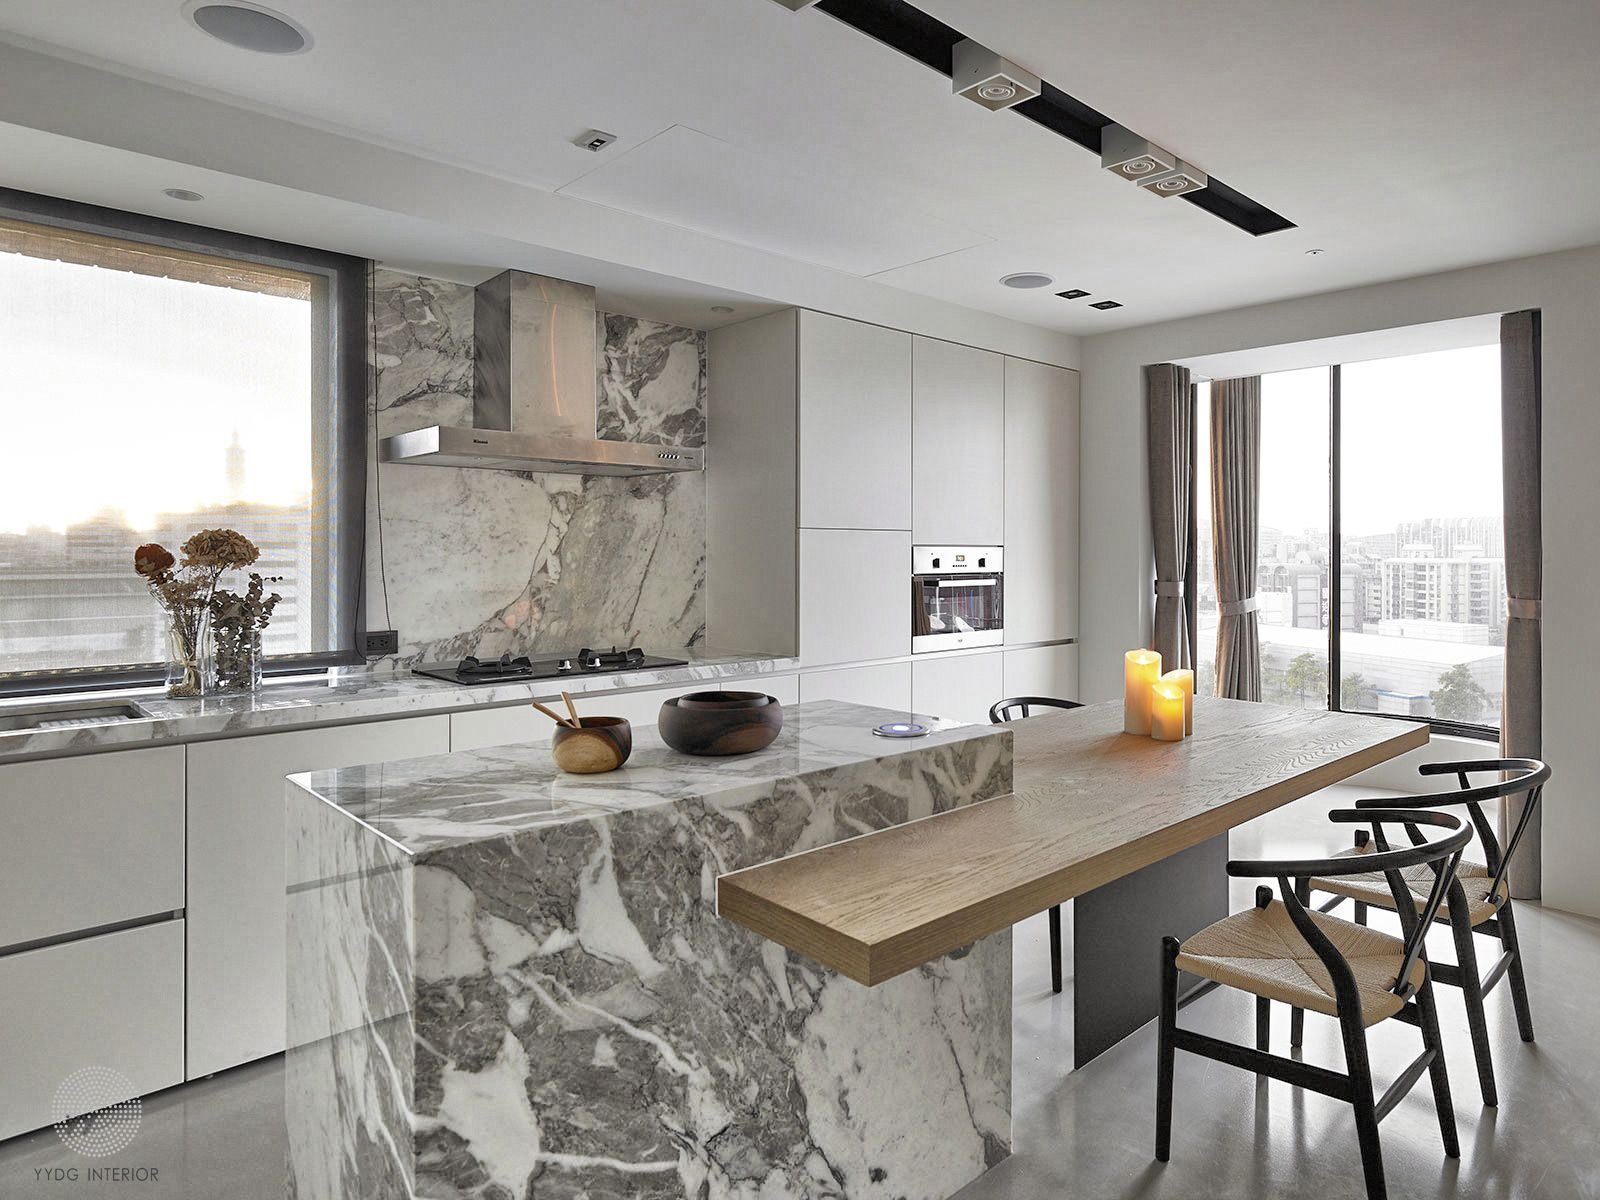 L residence yydgtw containerhome pinterest kitchens